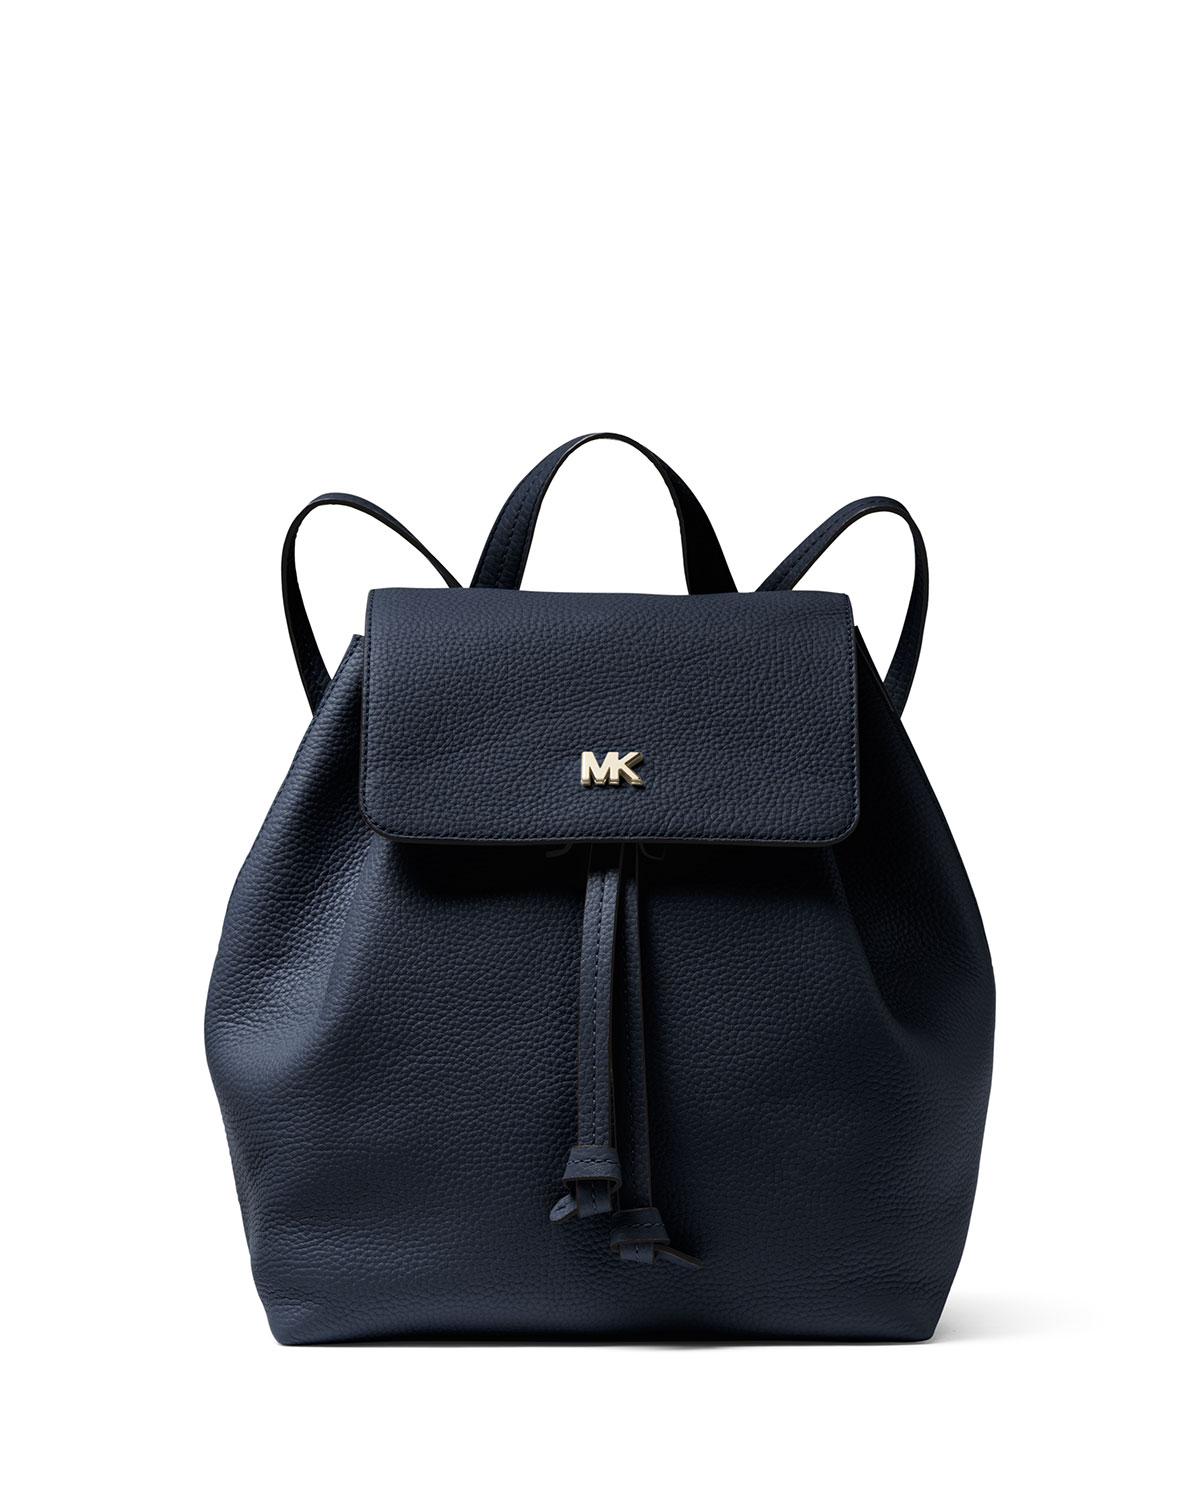 92938069fc09 MICHAEL Michael Kors Junie Medium Leather Flap Backpack | Neiman Marcus